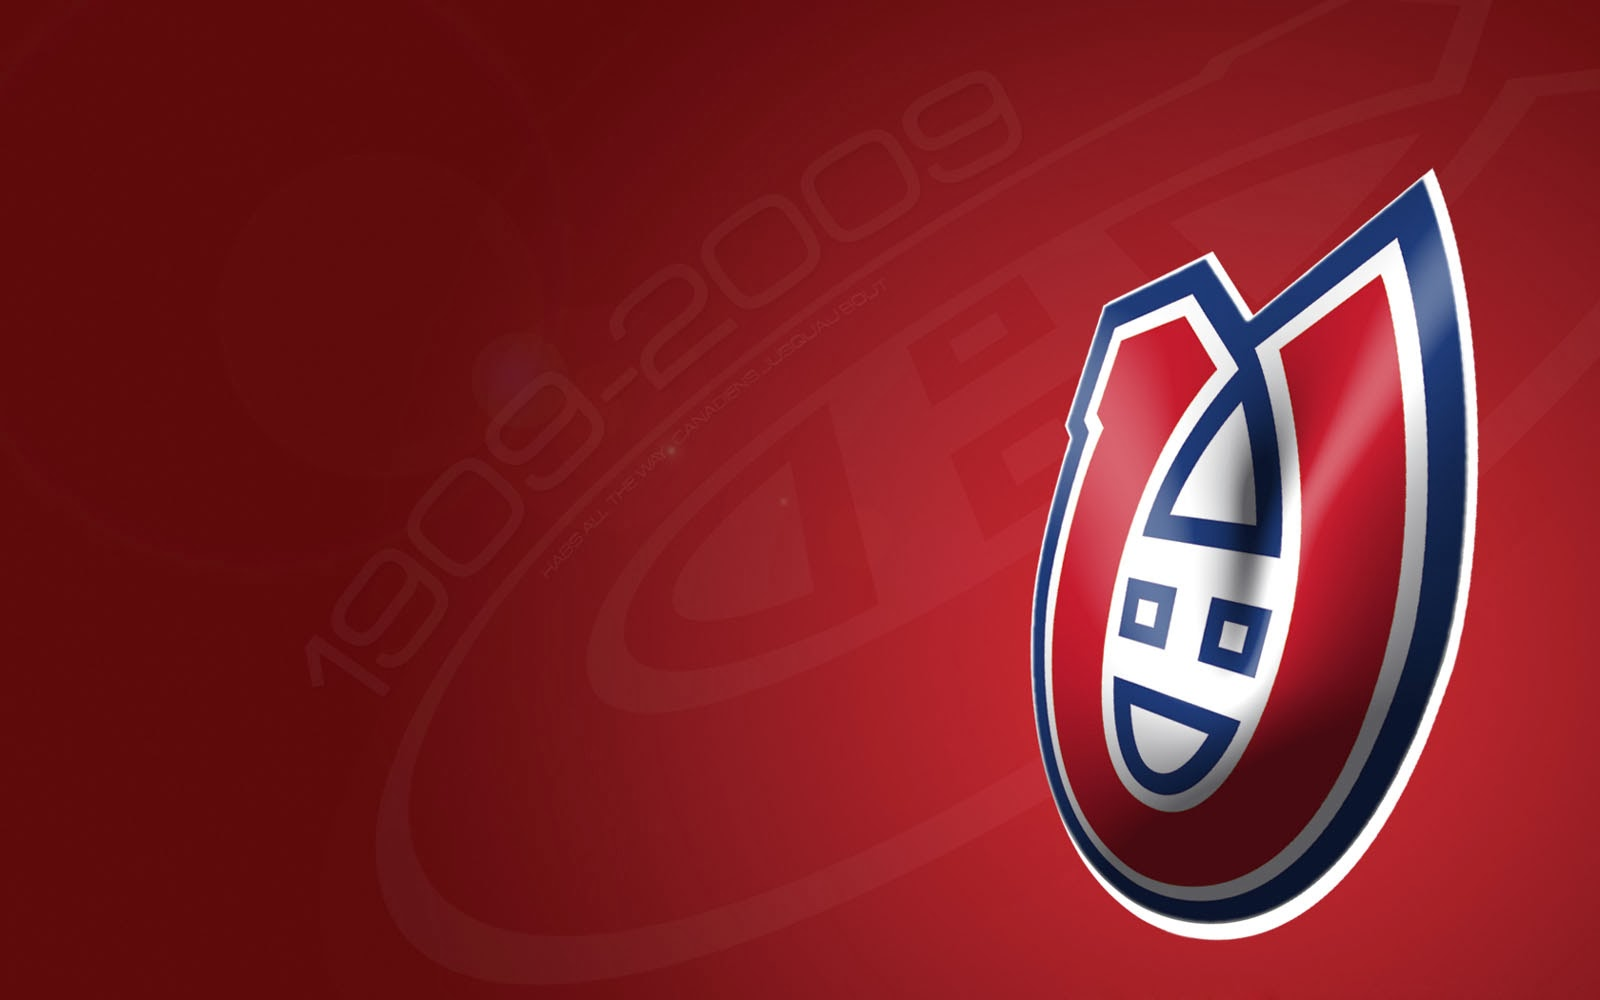 3d Galaxy Wallpaper Hd Wallpapers Montreal Canadiens Wallpapers